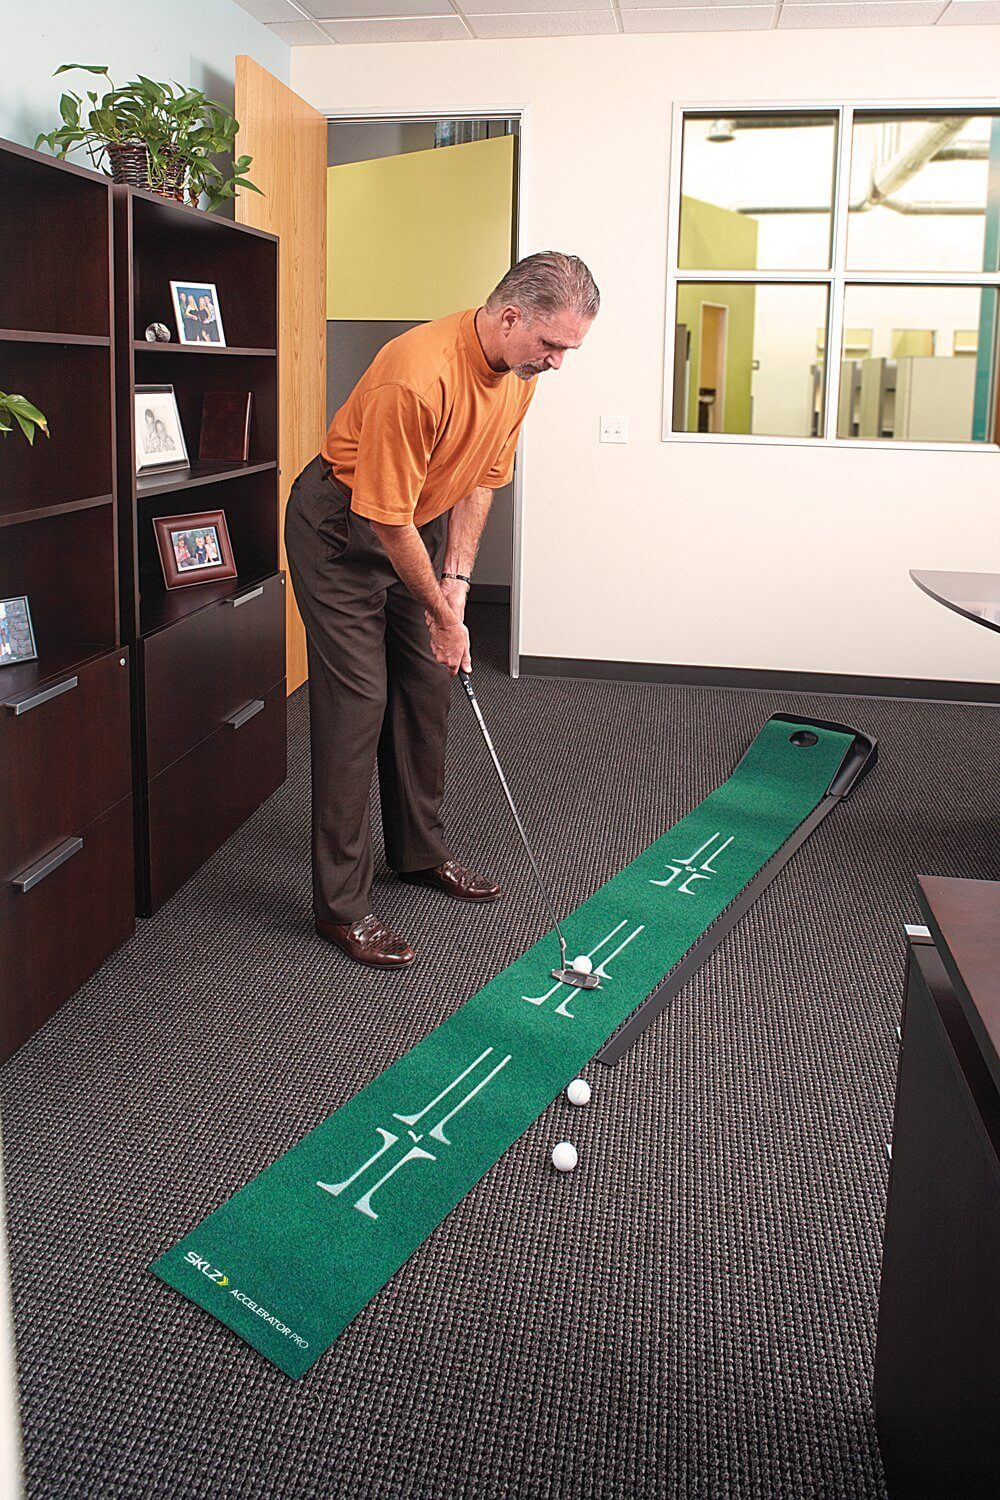 This indoor putting green is a more traditional example, with rolled-out surface locking into a simple raised plastic hole and ball return.